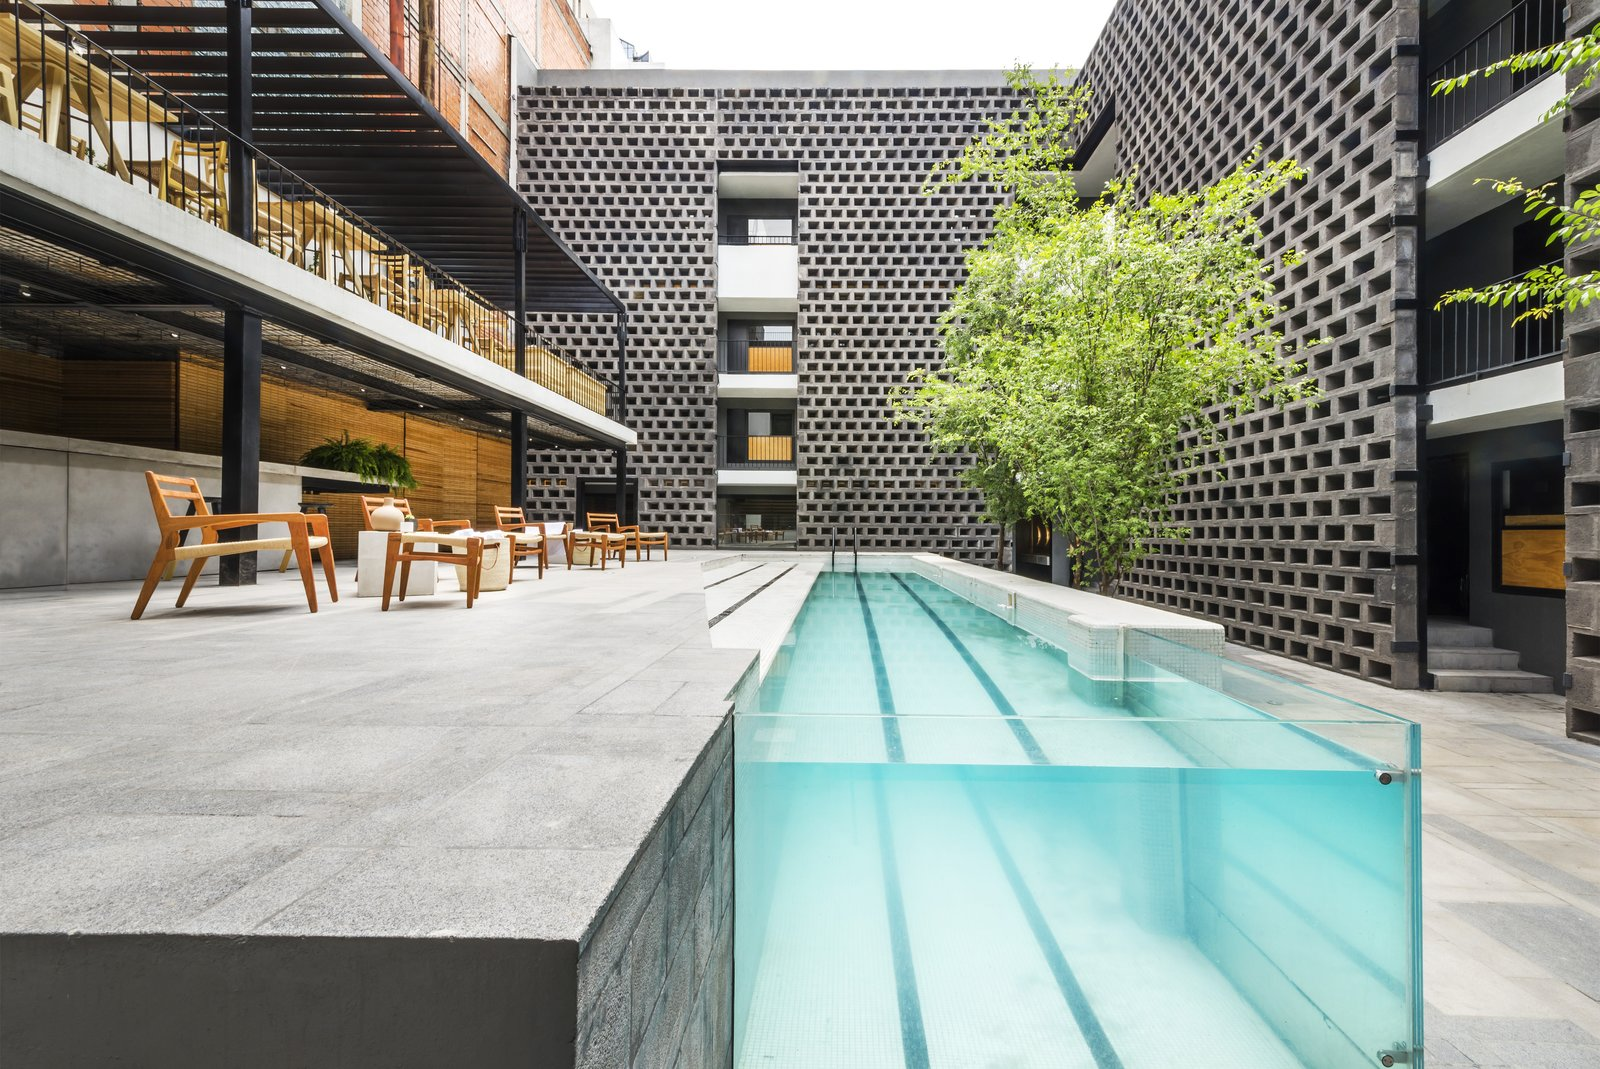 Outdoor, Walkways, Trees, Large Patio, Porch, Deck, Concrete Patio, Porch, Deck, Hardscapes, and Lap Pools, Tubs, Shower Originally dating to the 1970s, Hotel Carlota was revamped by JSa Arquitectura and completed in 2015. As part of the renovation, a pool became the focal point of the courtyard, and its modernized, streamlined design makes a dramatic statement.  Hotel Carlota from This Mexico City Hotel is a Showcase of New Mexican Design